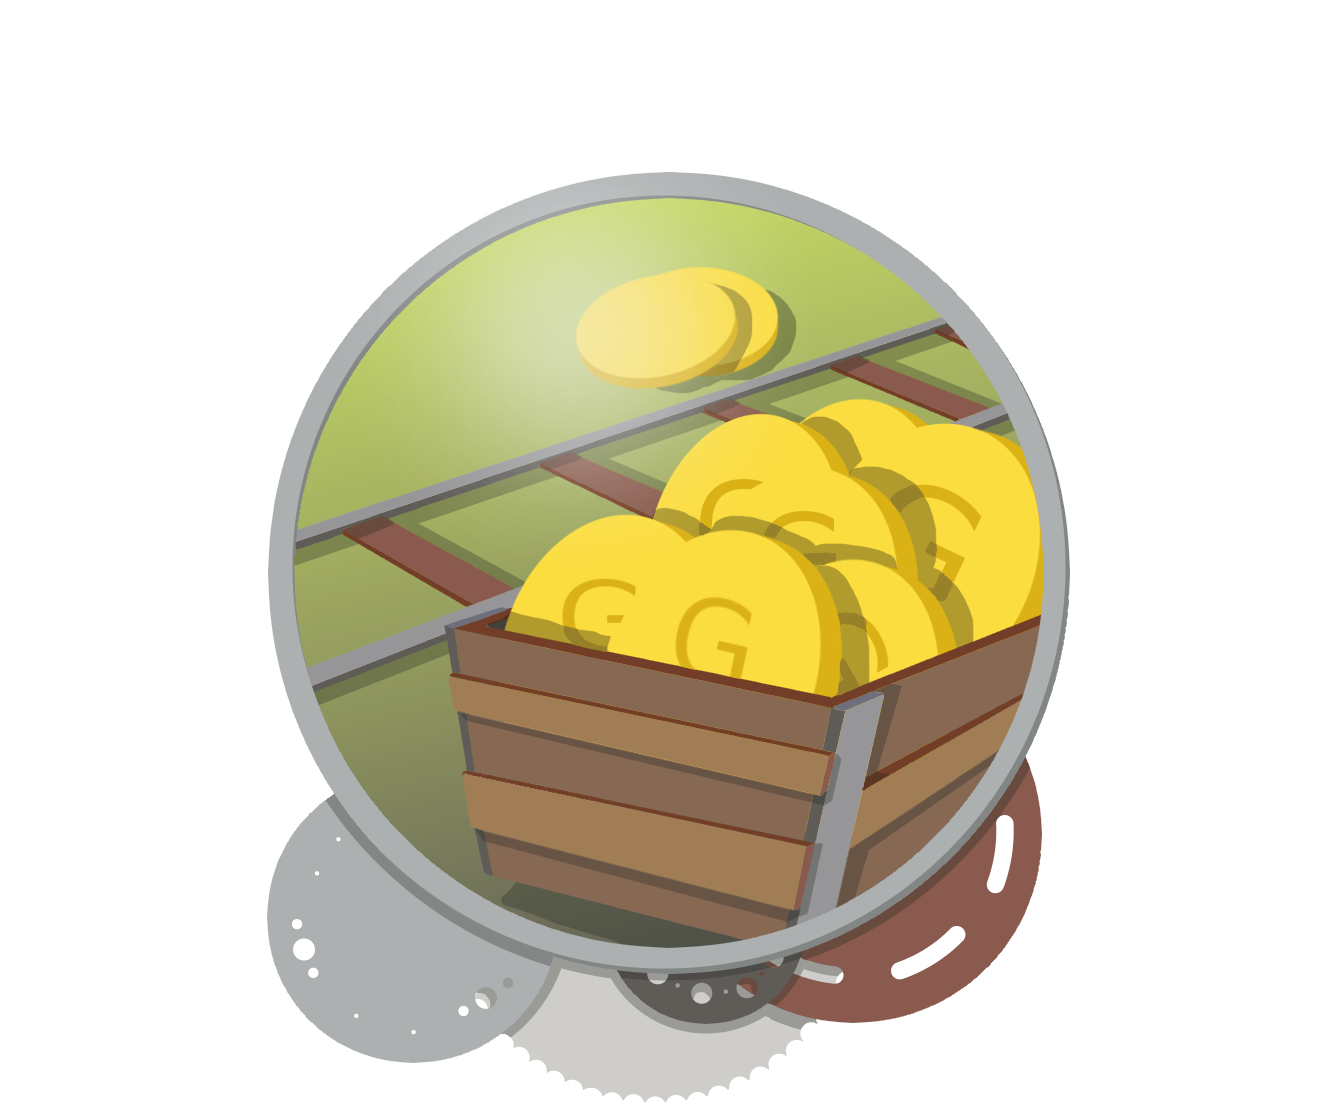 Wallet clipart subsidy. Gridcoin io become an